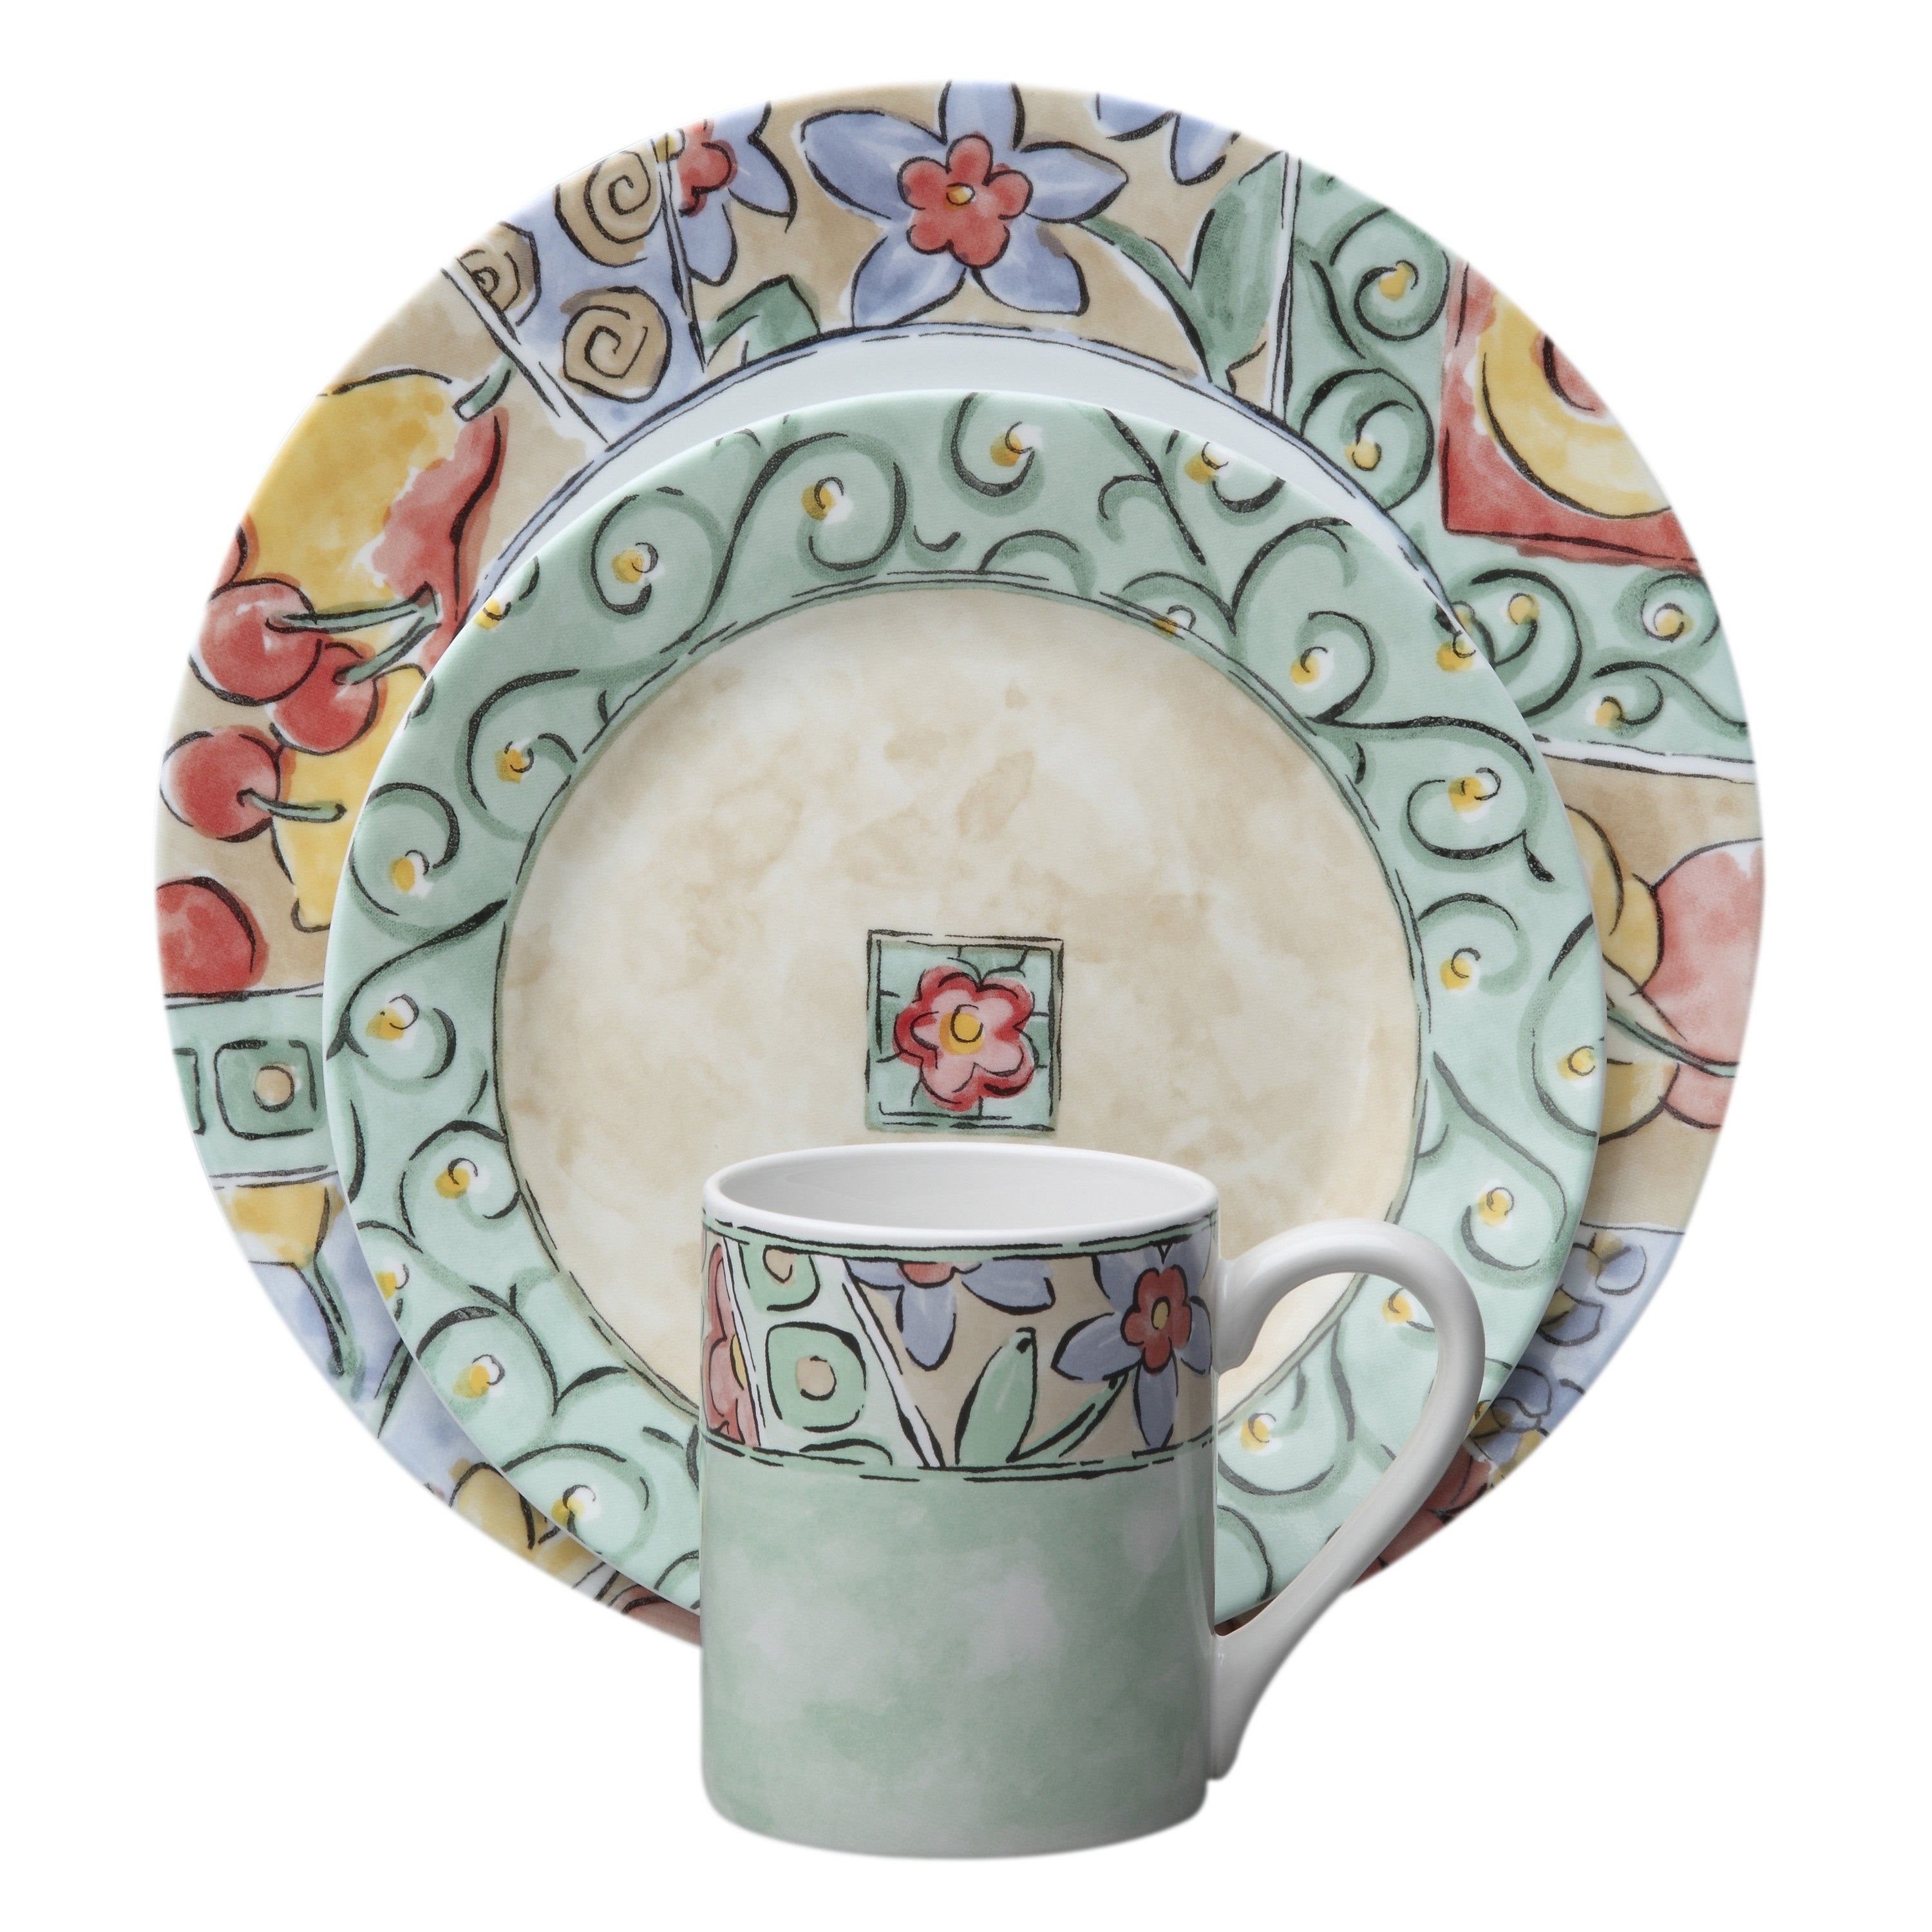 Corelle Impressions Watercolors Stoneware and Glass 16-piece Dinnerware Set - Free Shipping Today - Overstock - 17130310  sc 1 st  Overstock & Corelle Impressions Watercolors Stoneware and Glass 16-piece ...